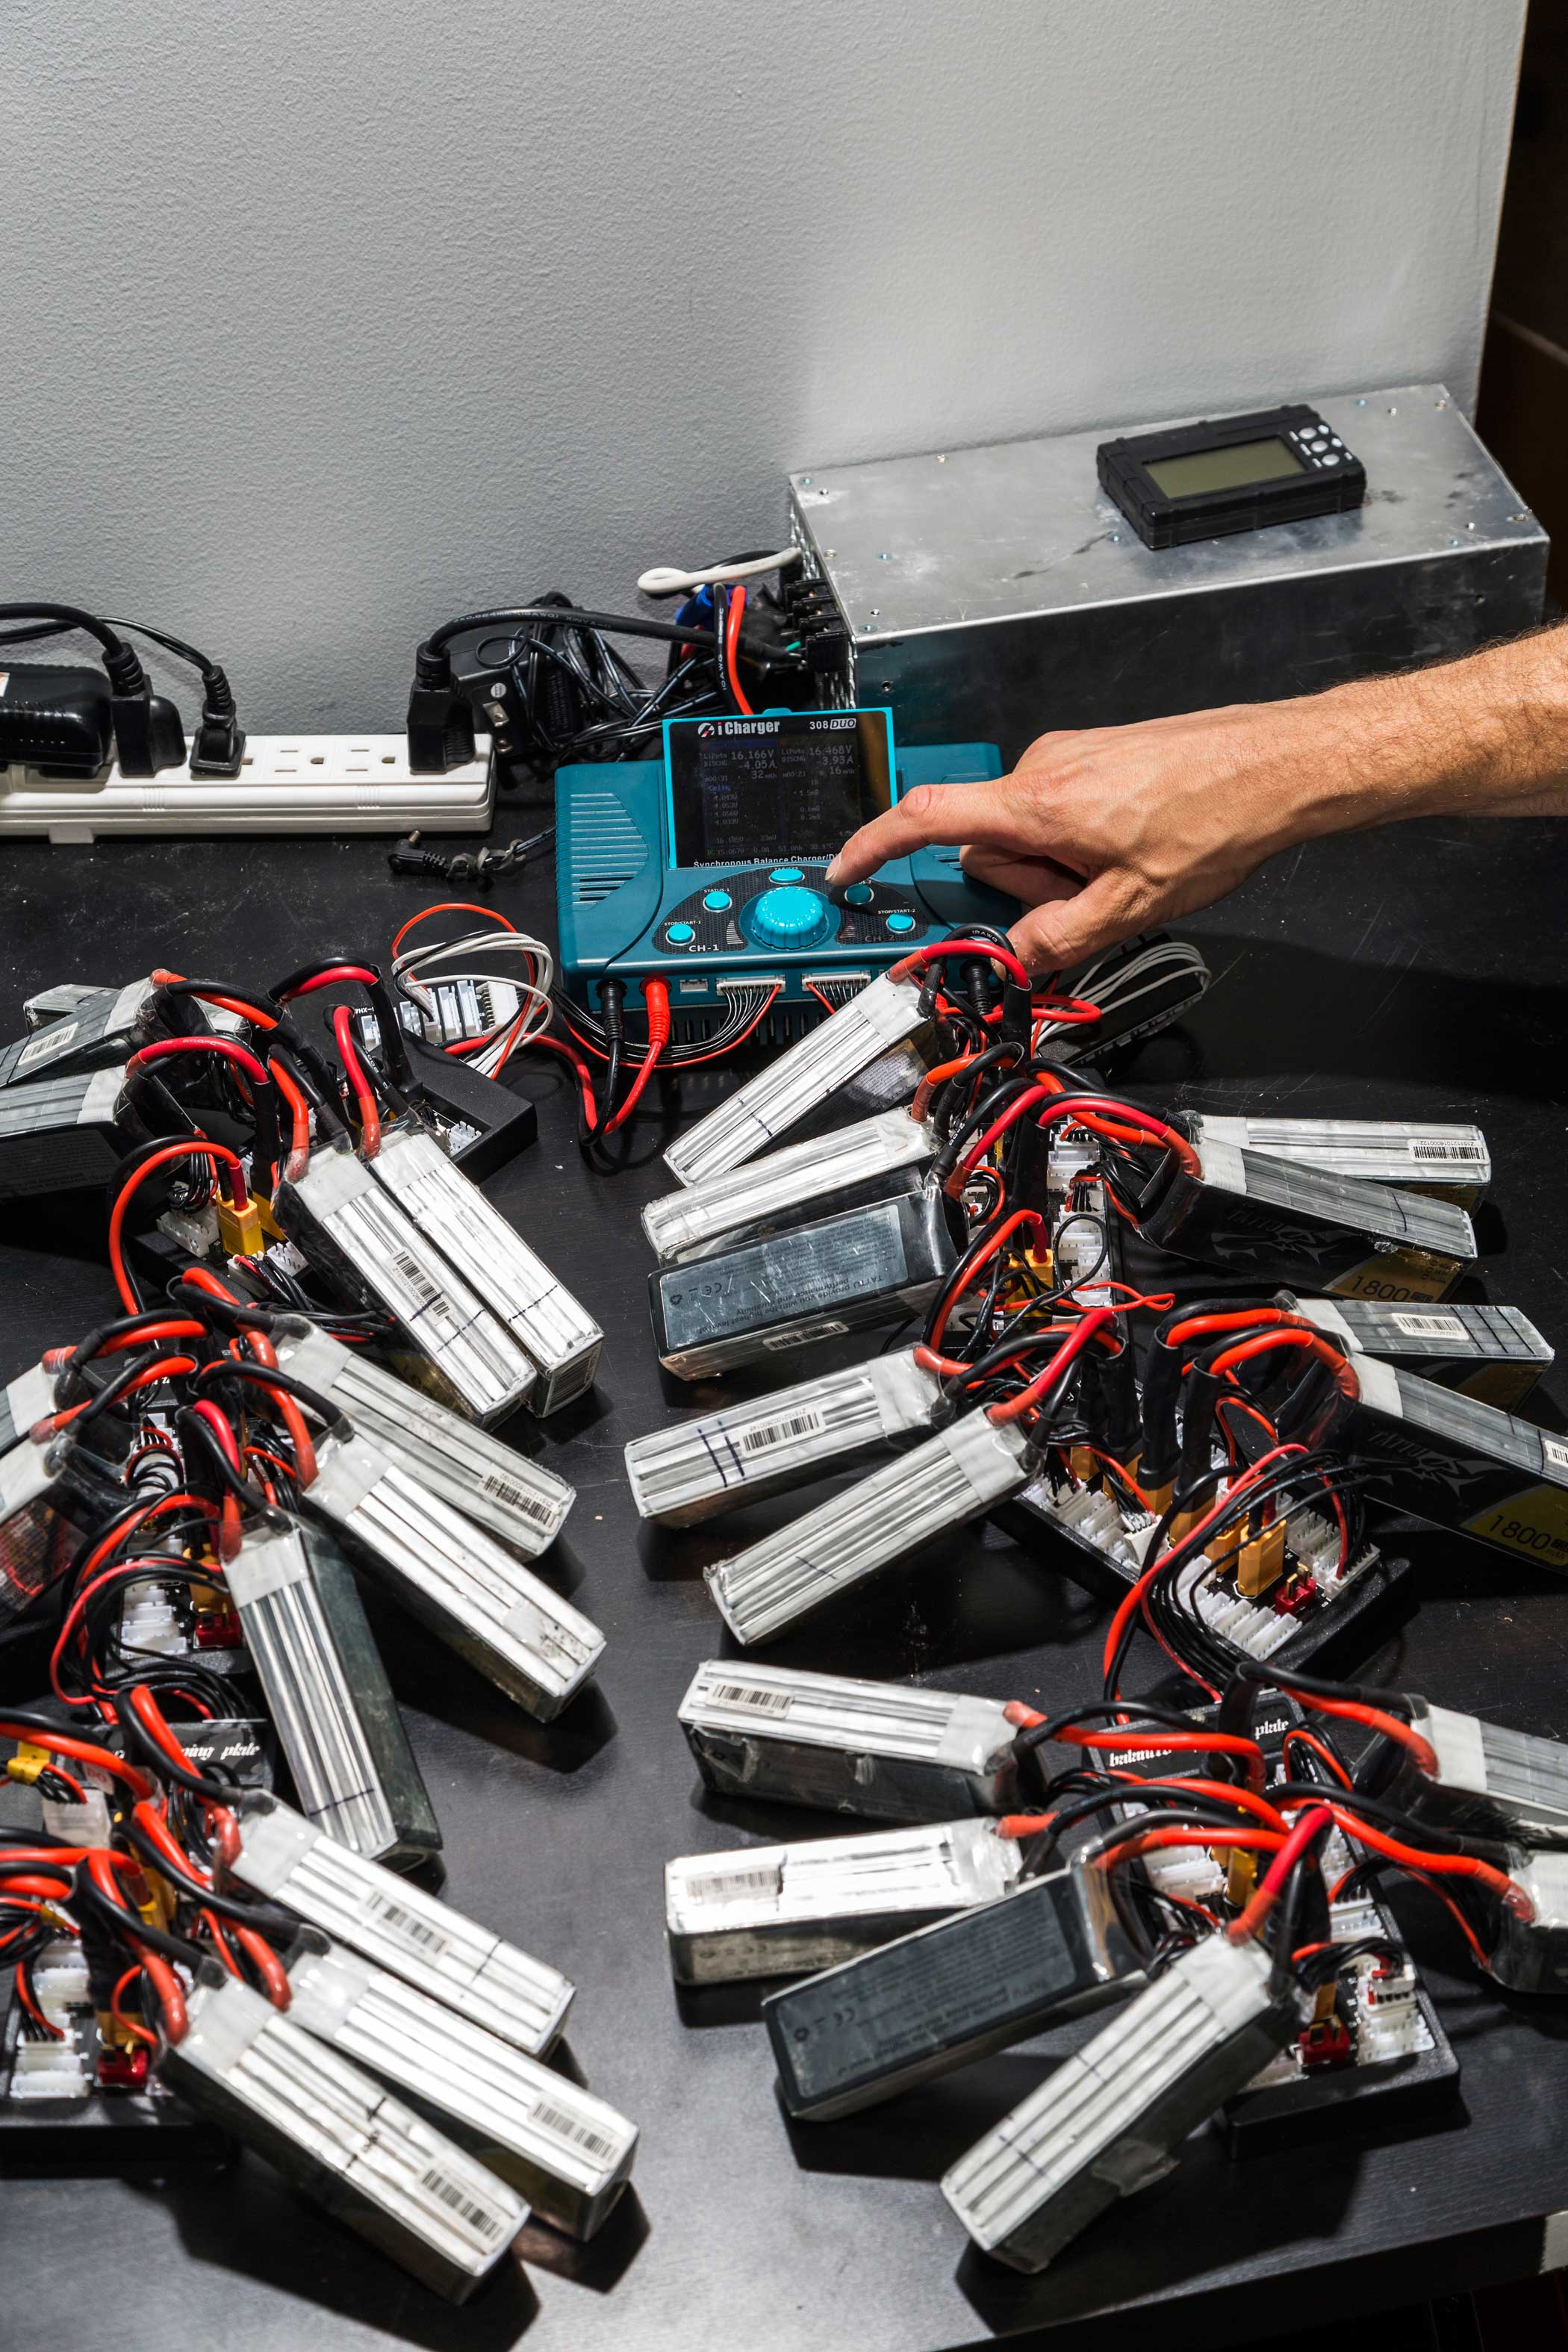 Drone batteries seen charging here. Drones have a tendency to rapidly burn through batteries.